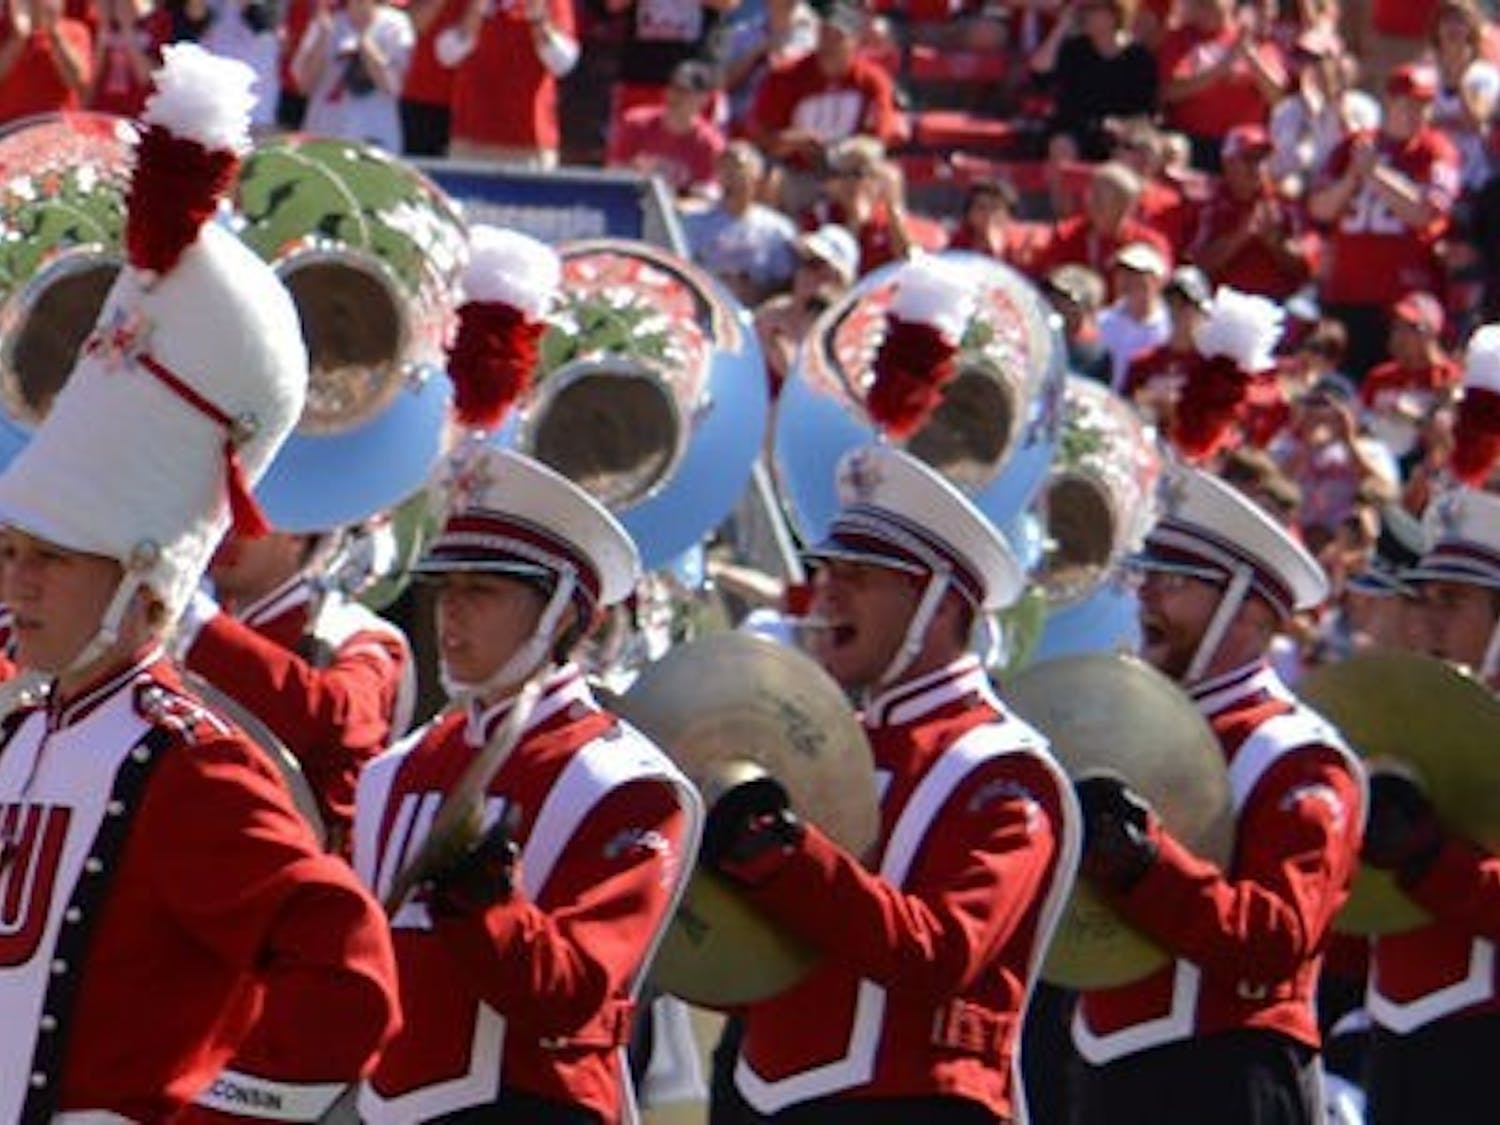 A new UW-Madison Marching Band Director has been selected for the first time in 50 years.